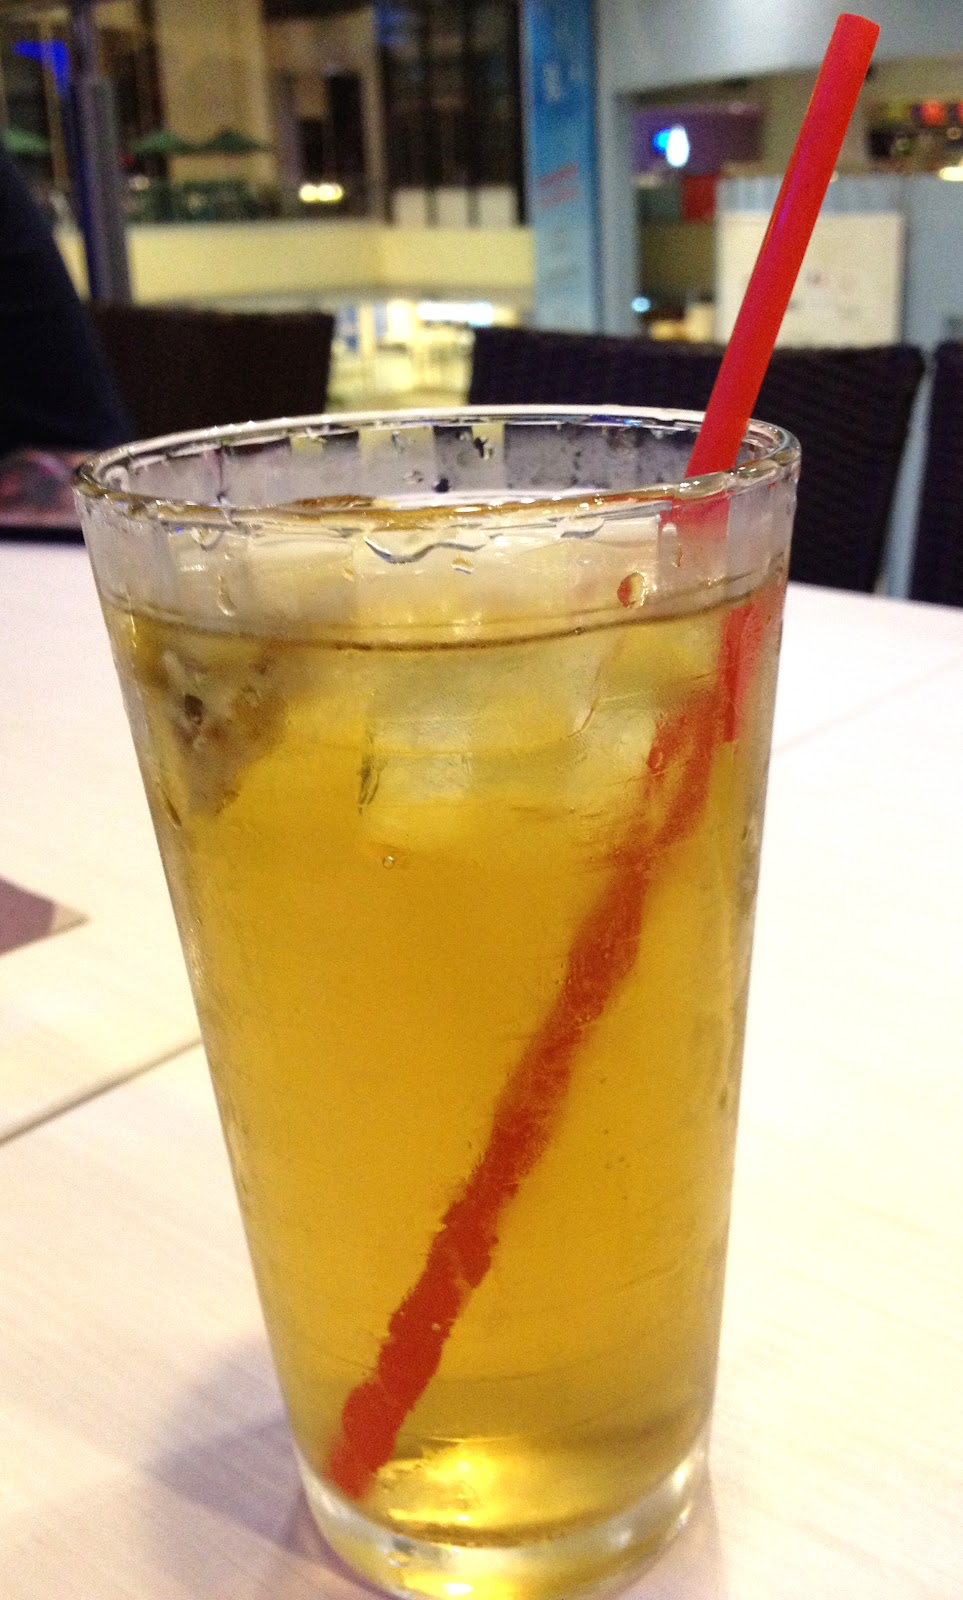 Served with an actual Chrysanthemum, it sure was a refreshing and ...